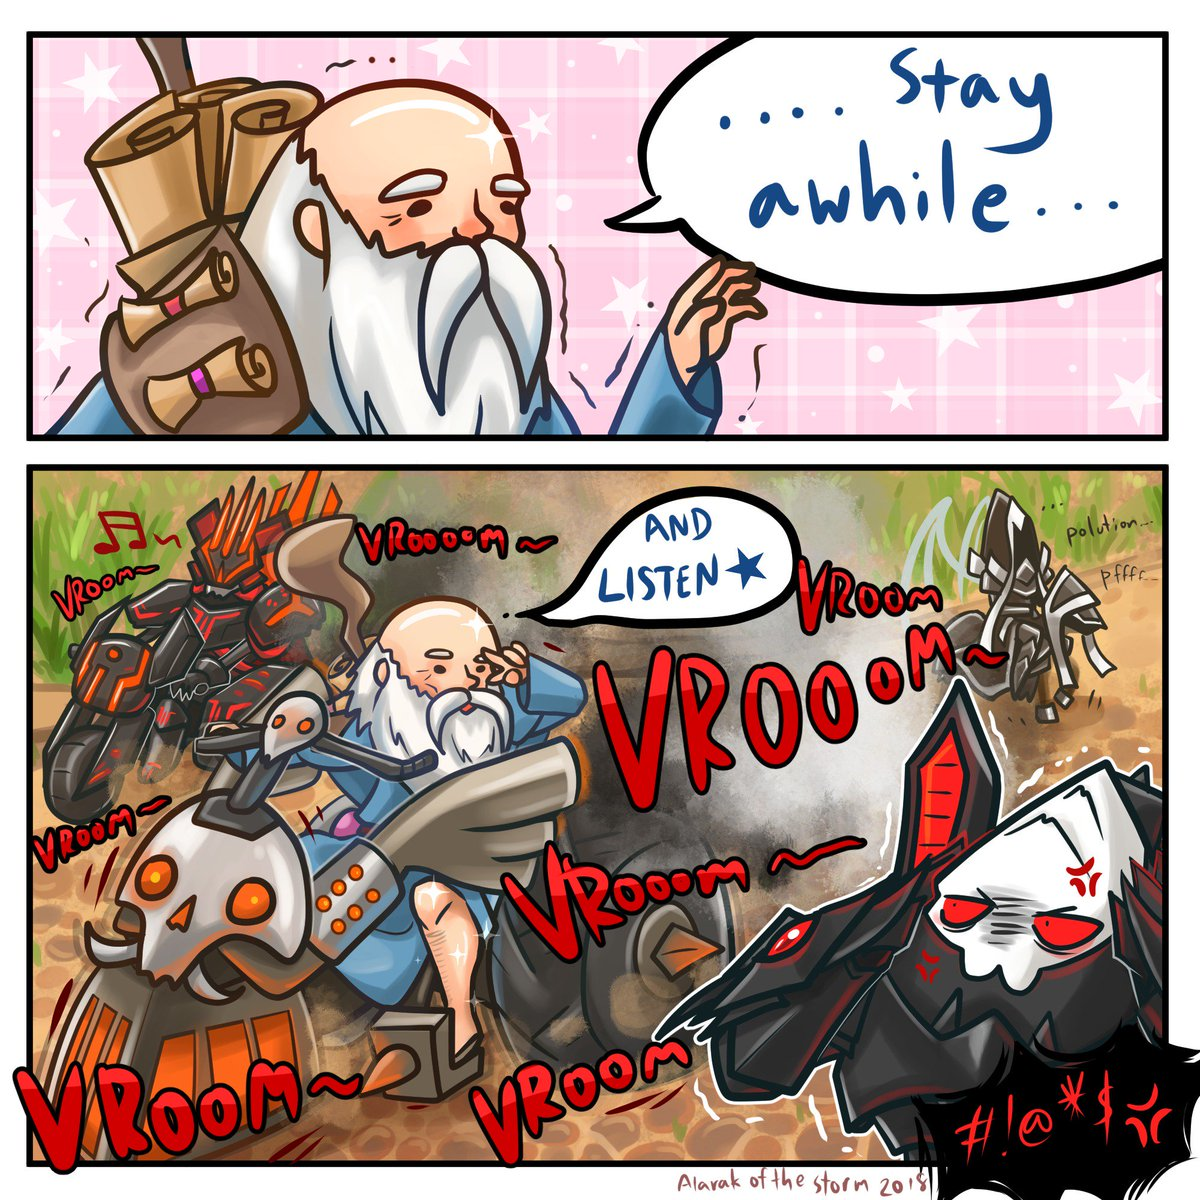 Alarak Of The Storm On Twitter This Old Dude Has Such An Epic Bundle Stay A While And Vroom Vroom Deckard Heroic Bundle Https T Co Czw7fpe4bx Https T Co I5viocwtxk The weathered old man generally. vroom vroom deckard heroic bundle